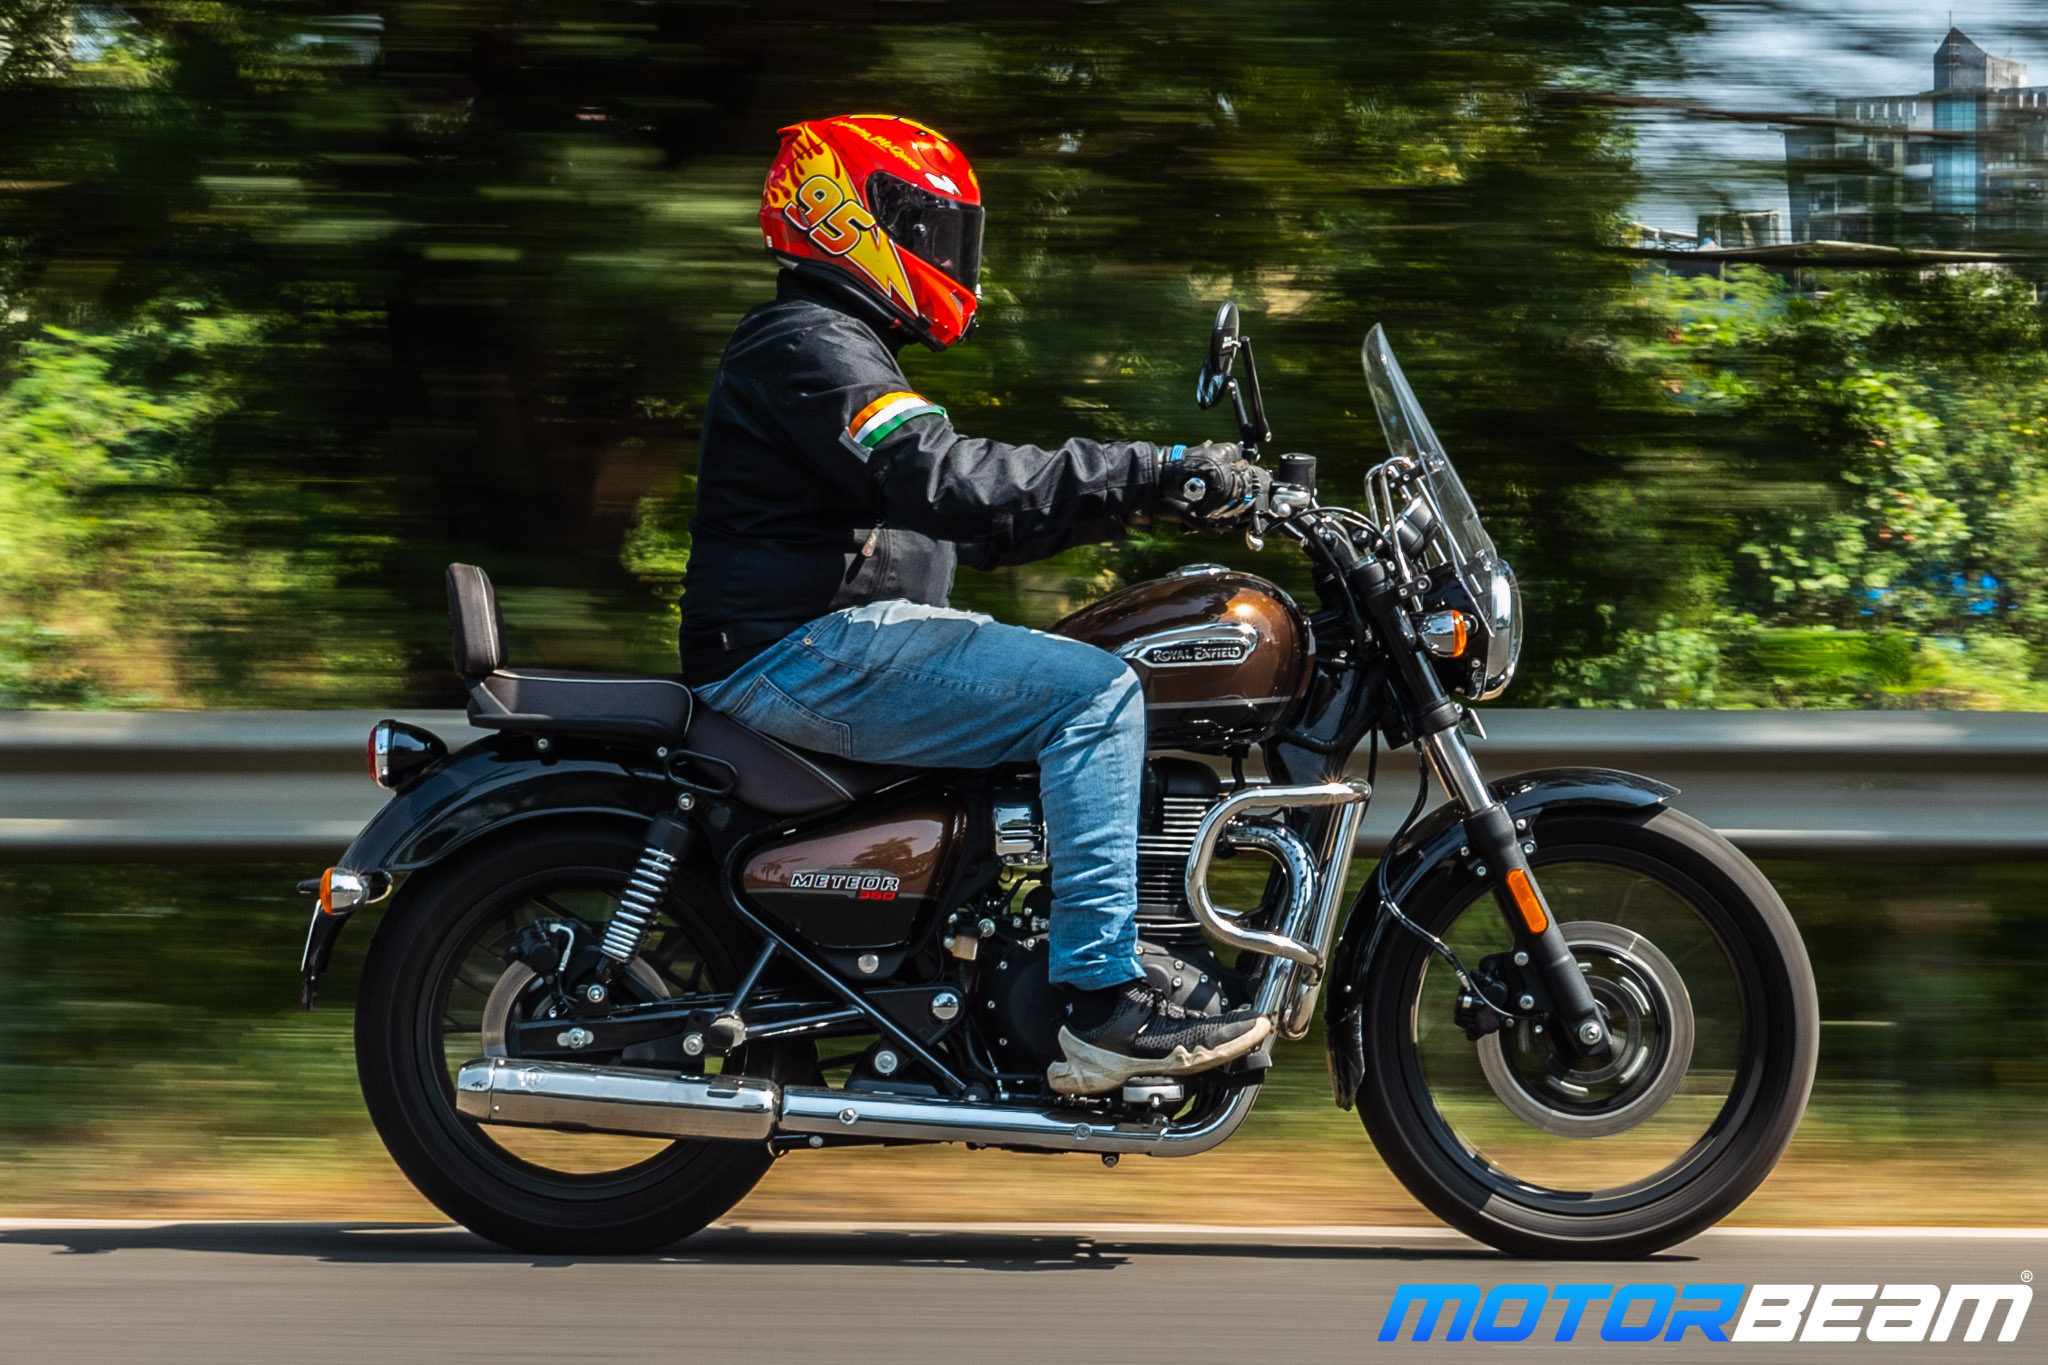 Royal Enfield Meteor 350 Review 2